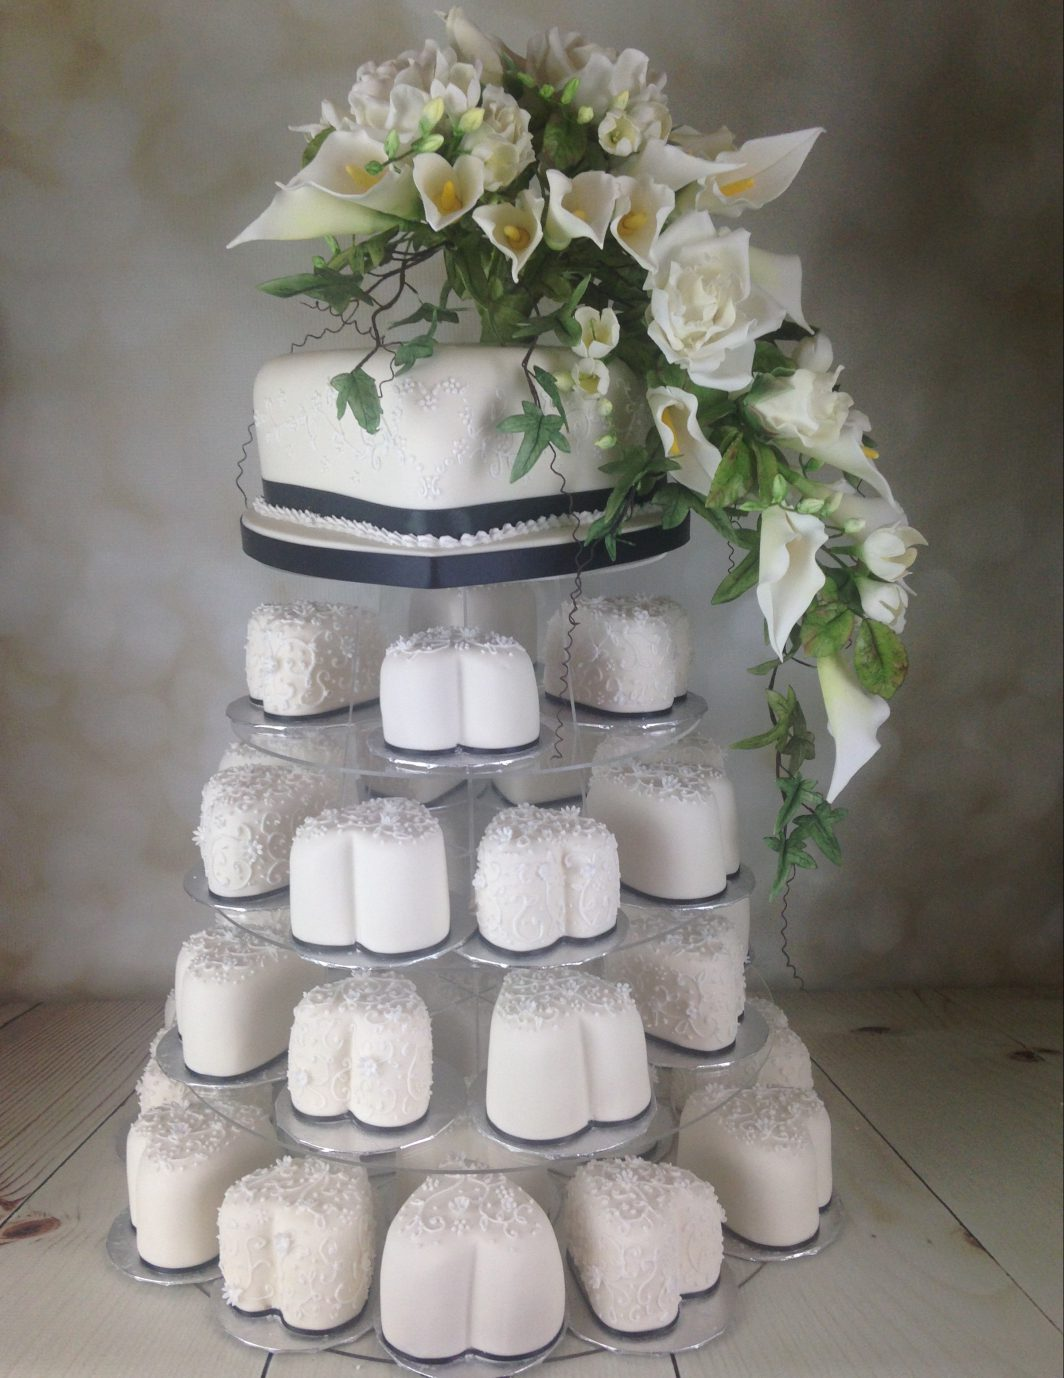 Mii hearts wedding cake